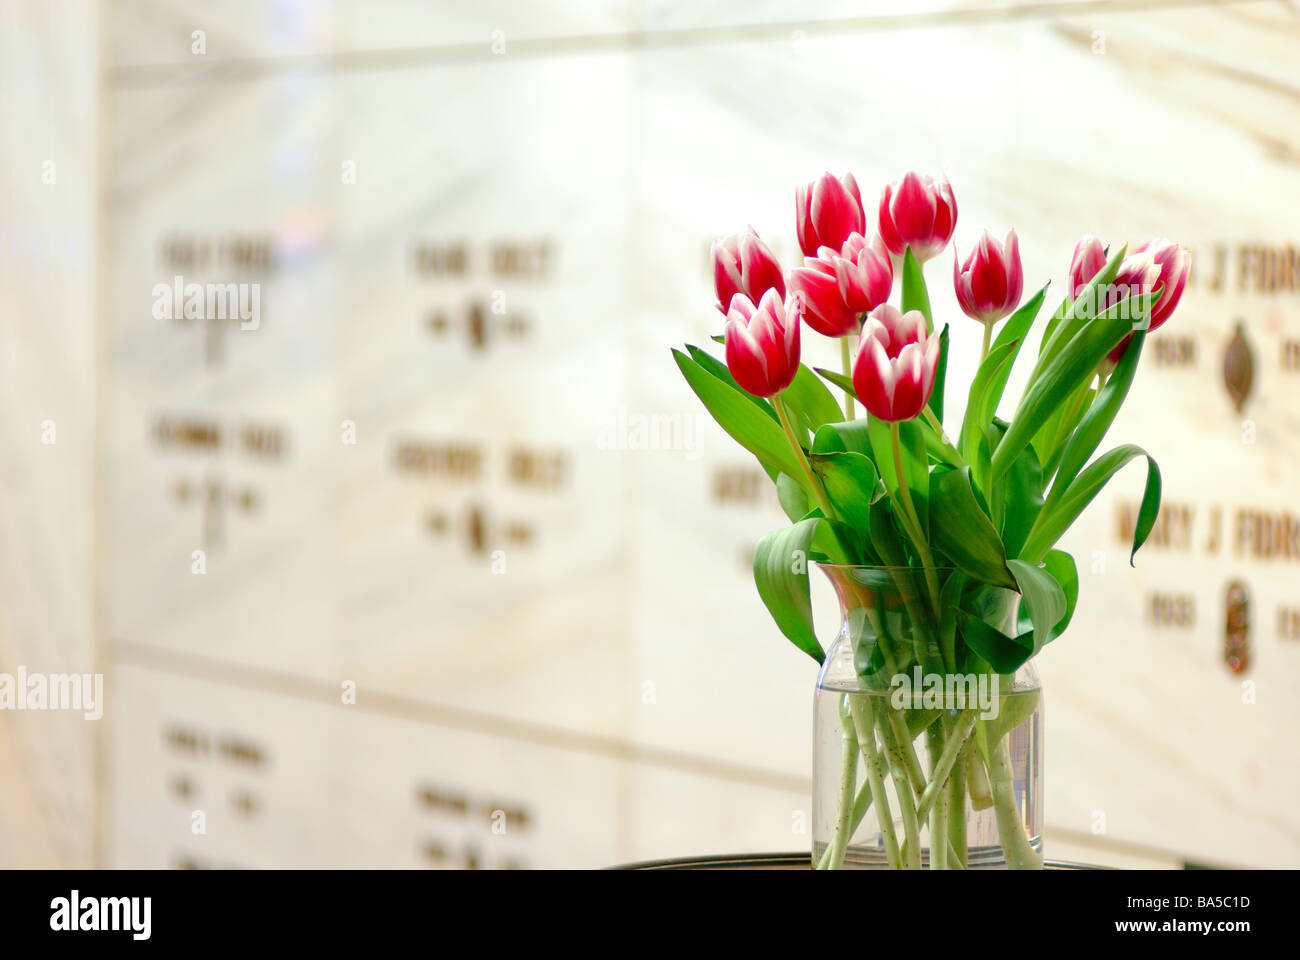 A flower arrangement left in memorium of a loved one in a mausoleum at Allegheny Cemetery, Pittsburgh, Pennsylvania. - Stock Image